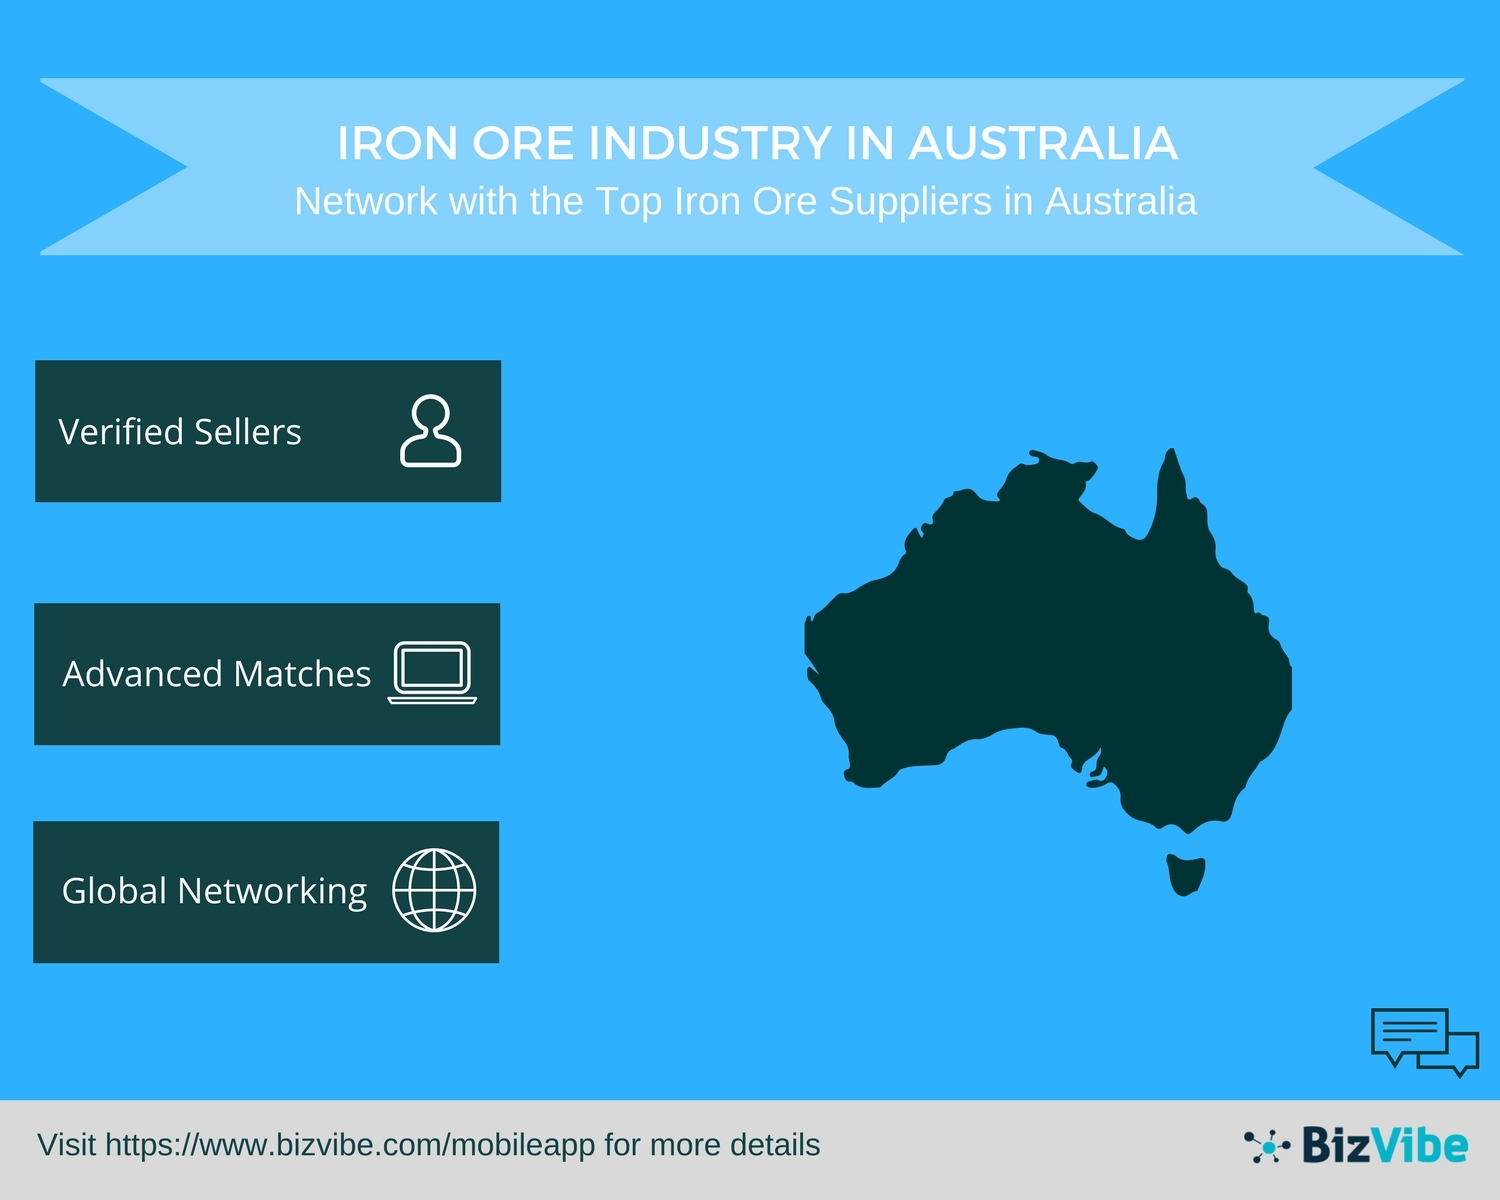 Iron Ore Suppliers In Australia Bizvibe Announces A New B2b Networking Platform For The Industry Business Wire